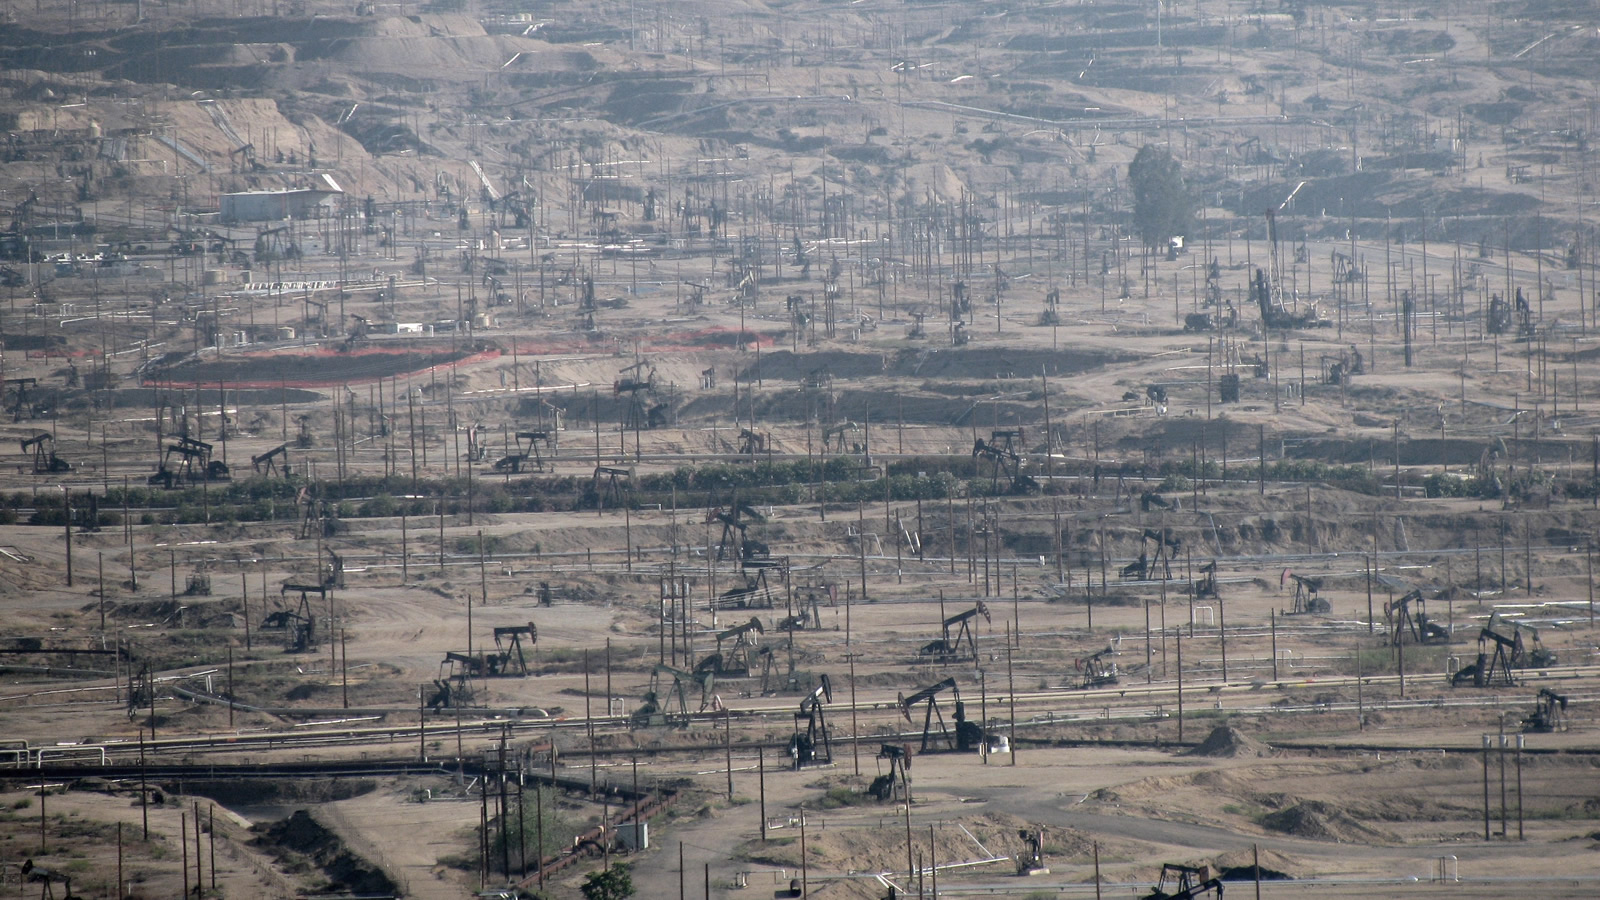 <h4>BUSINESS AS USUAL IS A DEAD-END</h4><h5>To slow global warming, fossil fuel companies can no longer operate as usual. We need to leave most oil, gas and coal in the ground.</h5><em>Antandrus via Wikimedia CC-BY-SA-2.0</em>